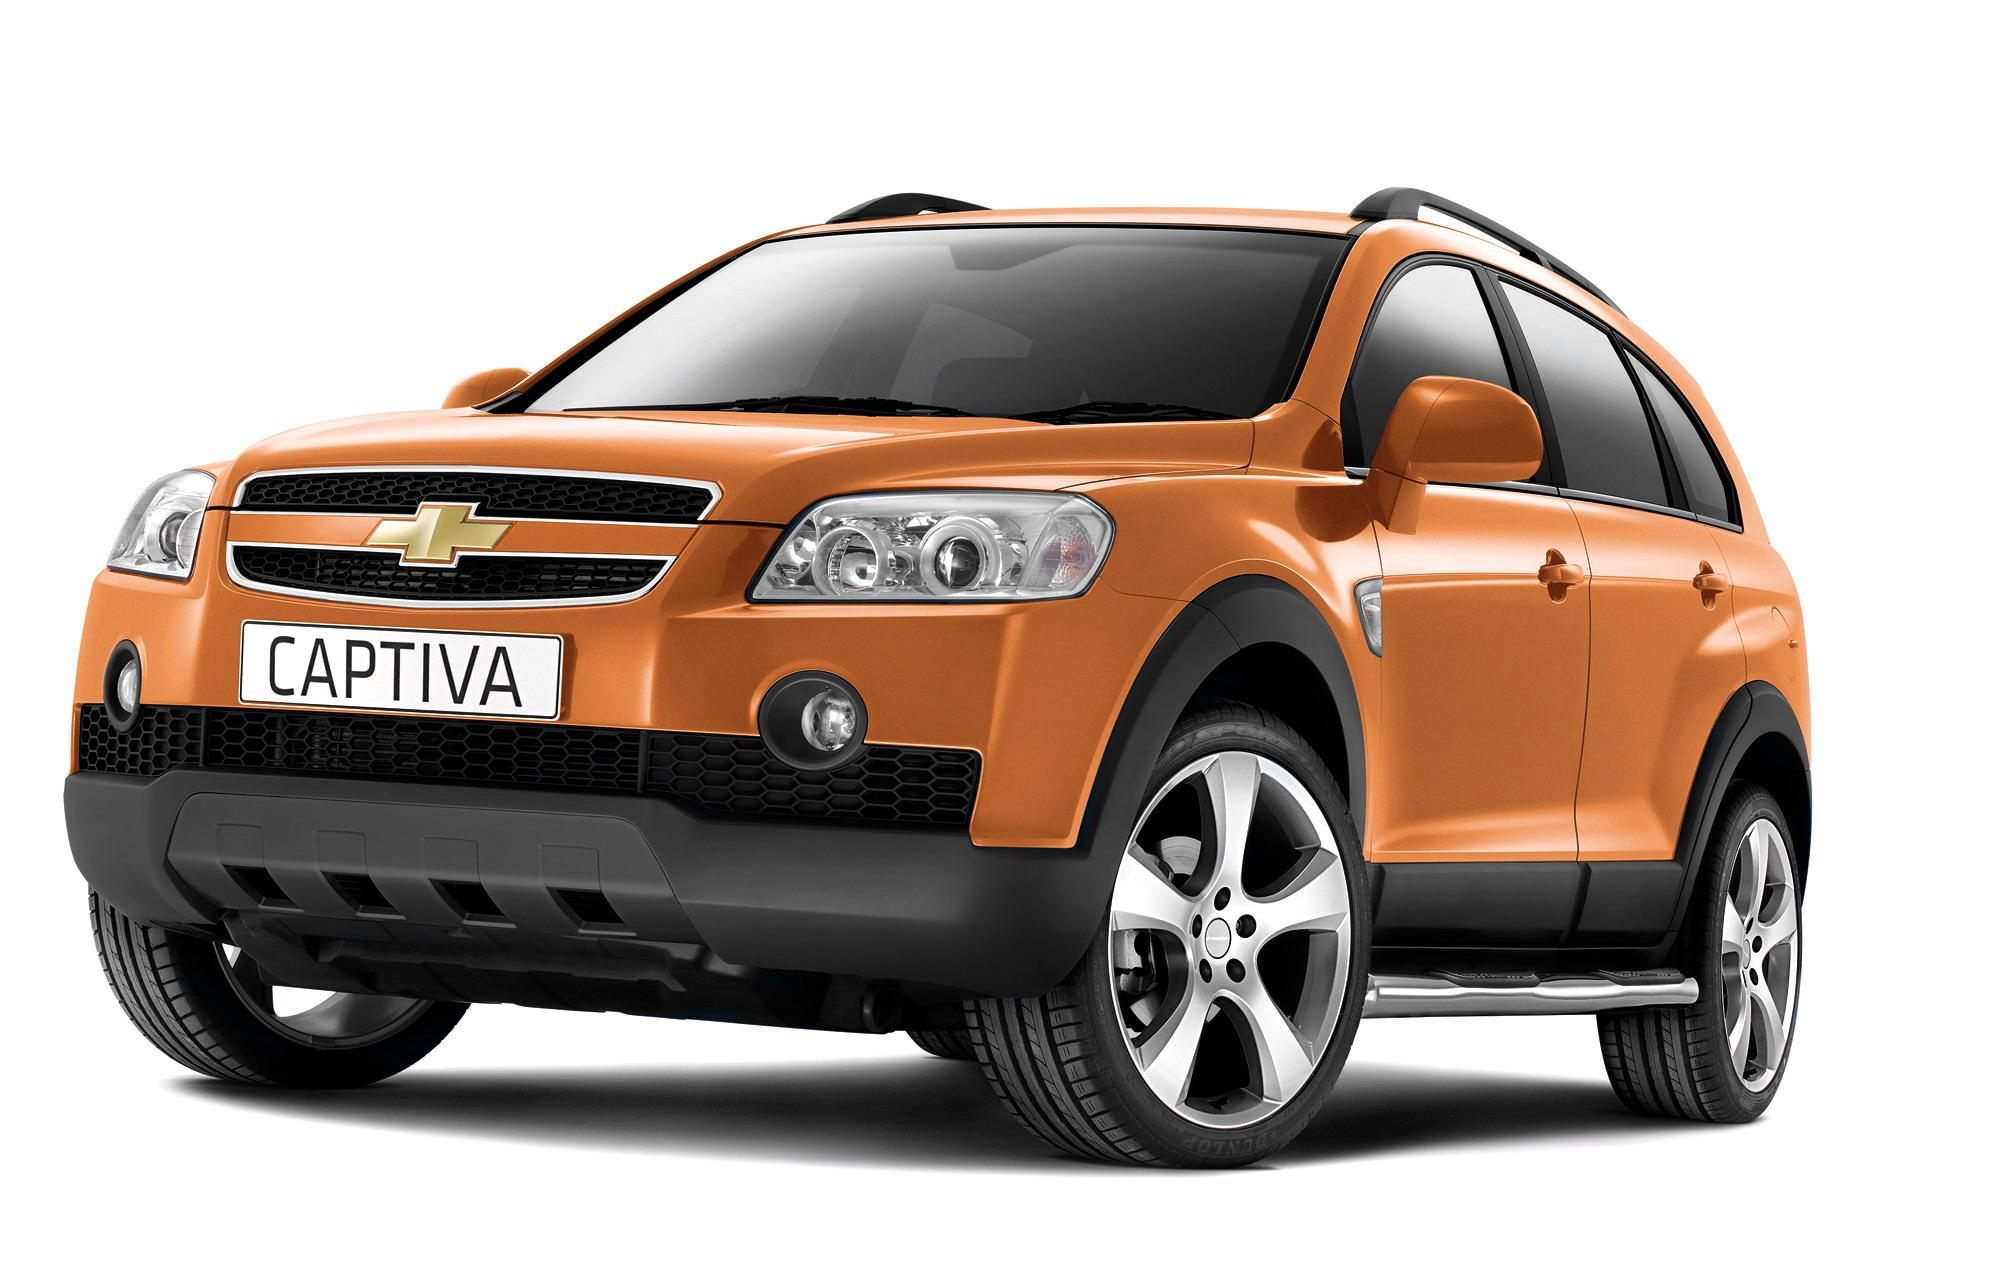 2008 chevrolet captiva 39 edge 39 review gallery top speed. Black Bedroom Furniture Sets. Home Design Ideas